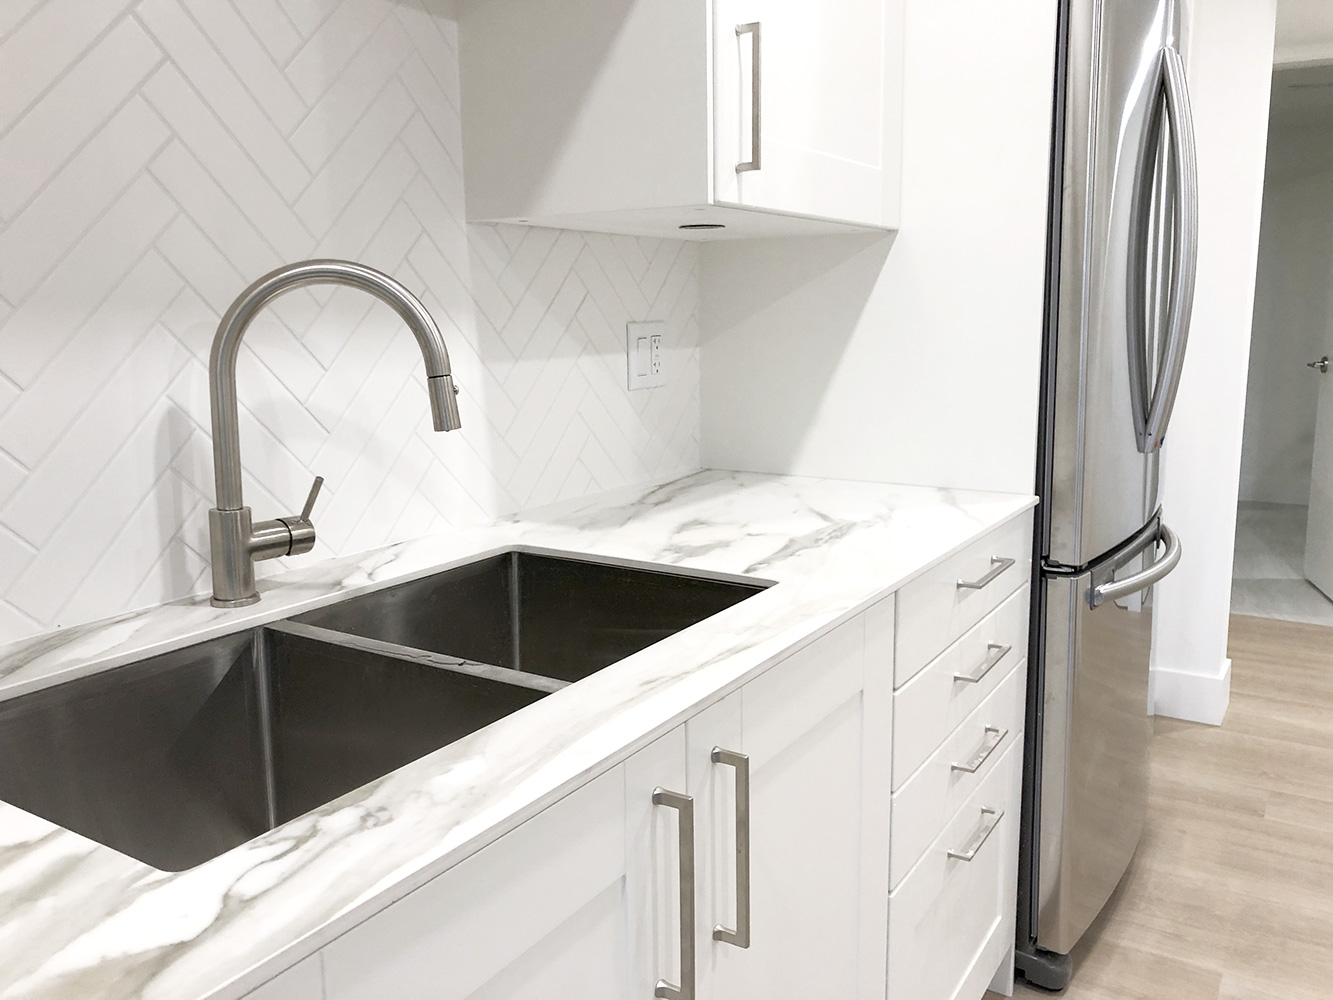 vancouver-contractor-renovations-IMG_5243.jpg